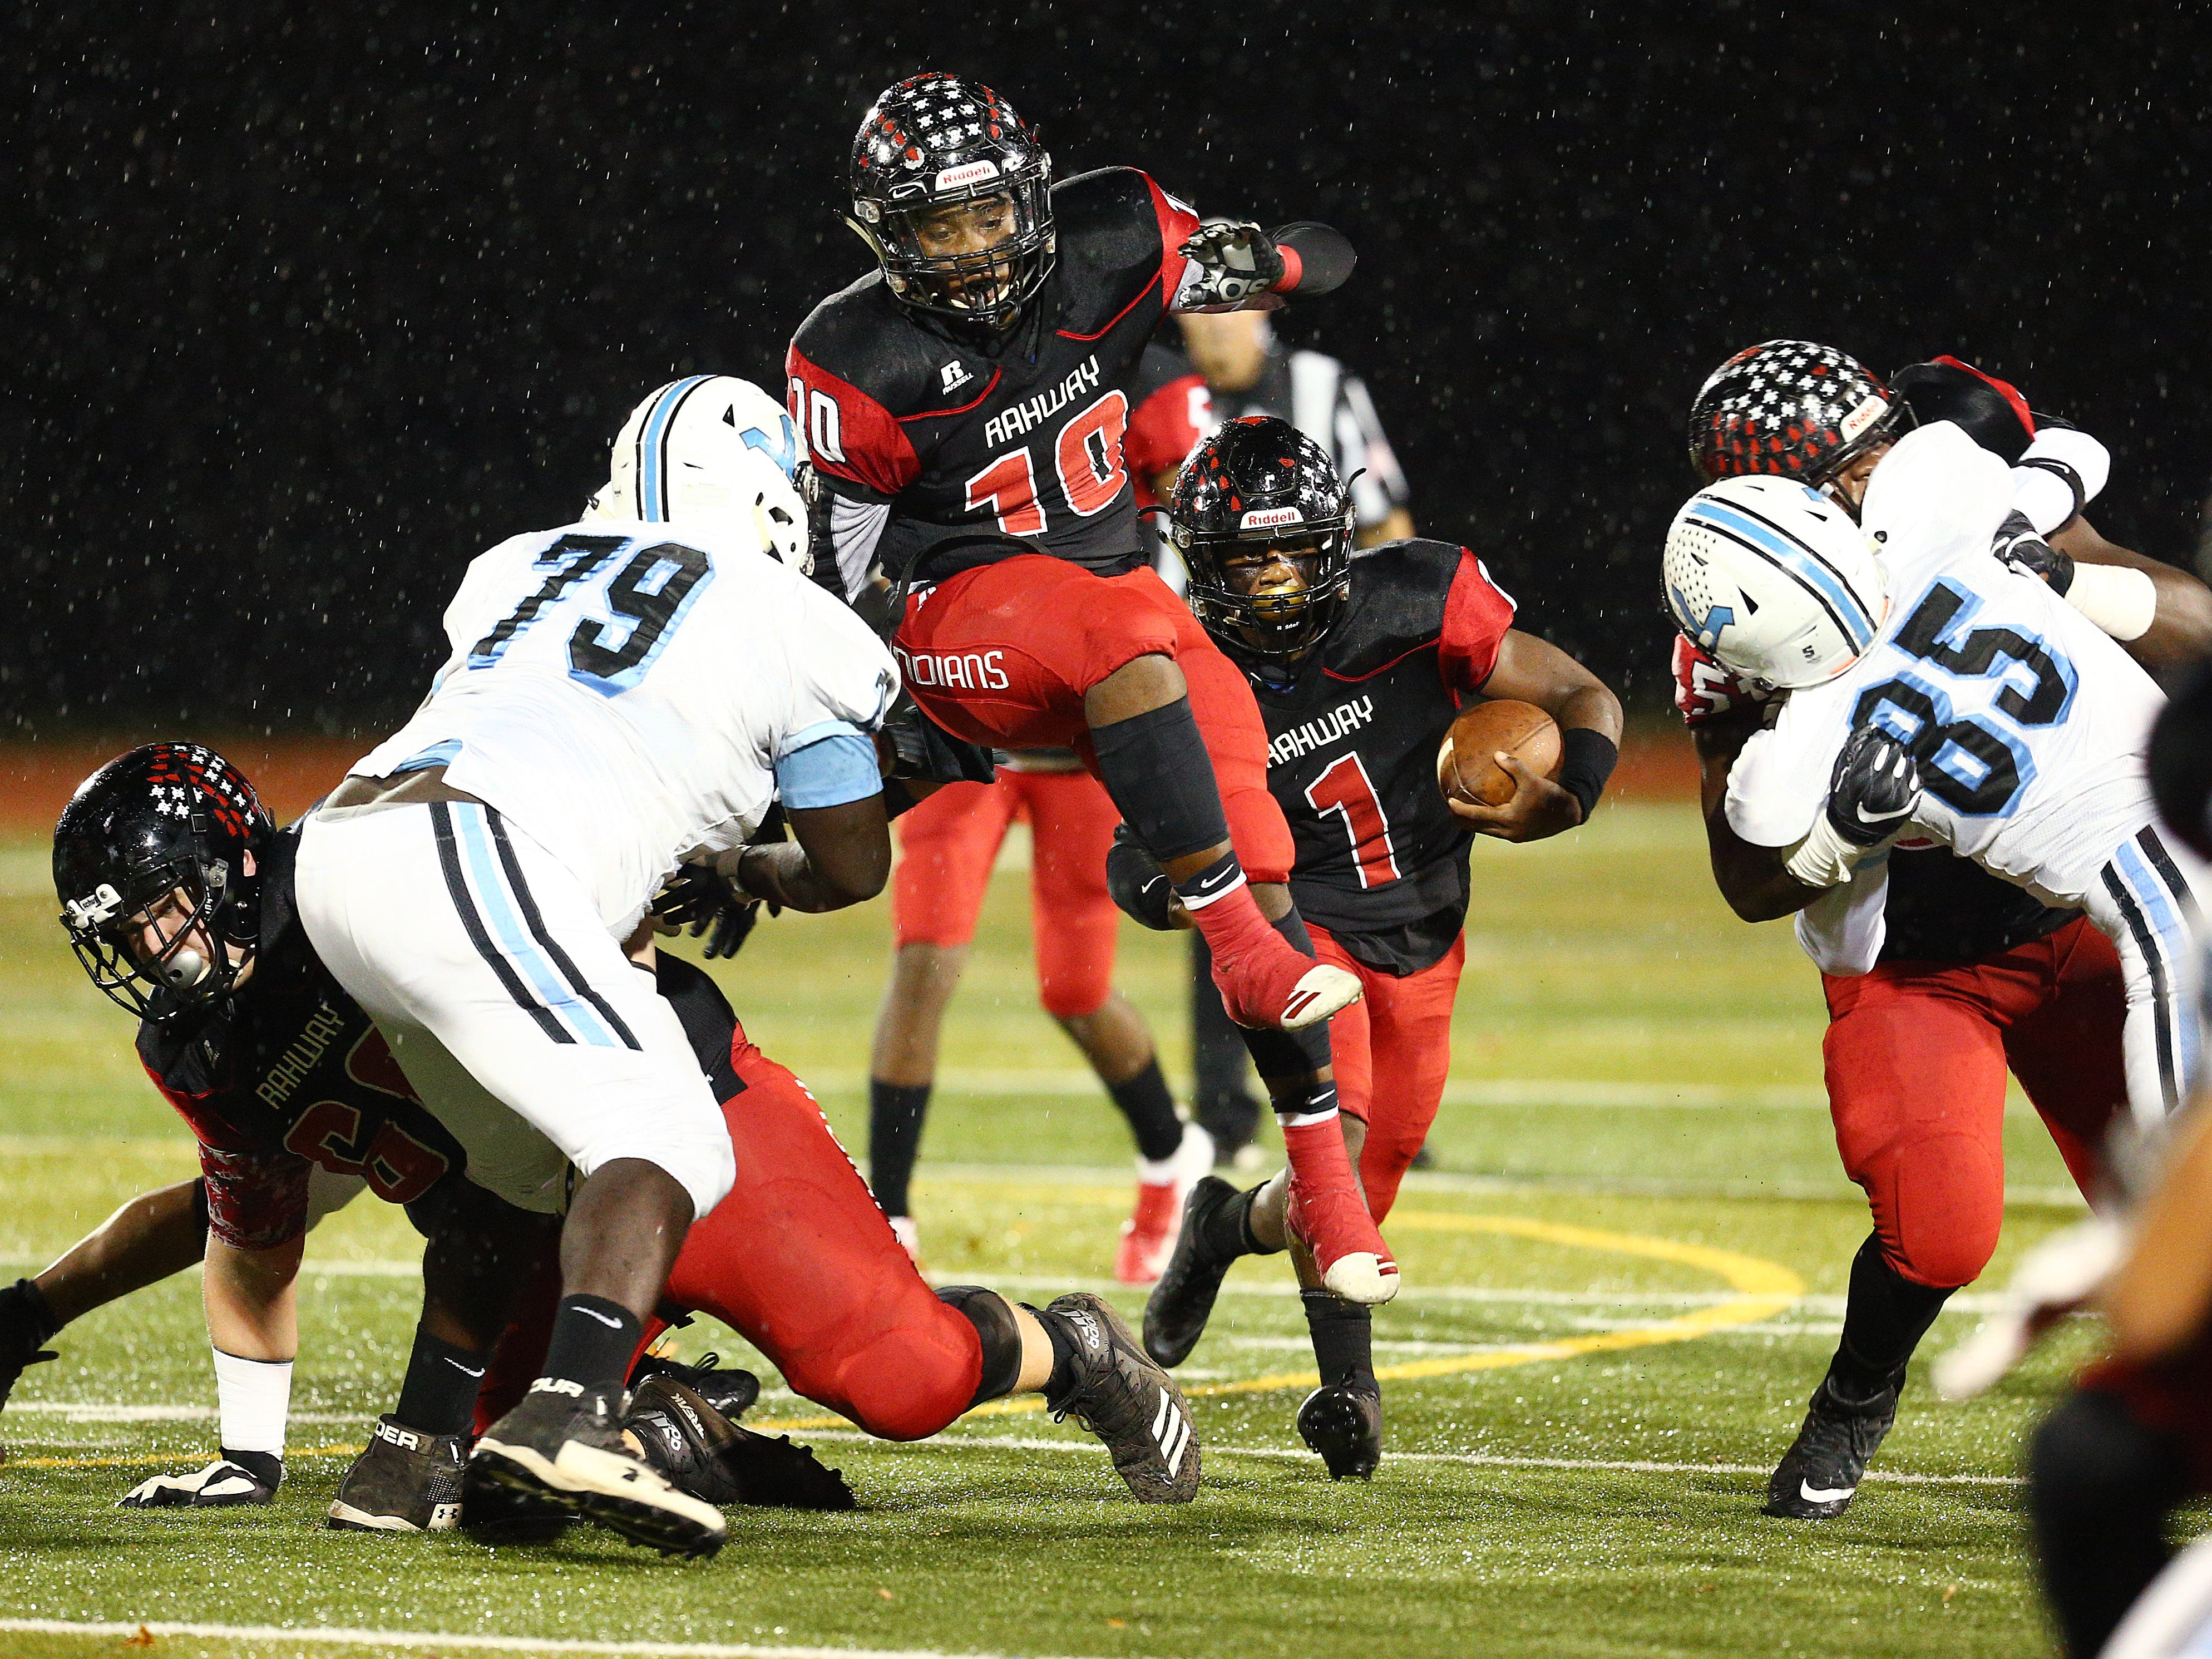 Rahway's Jalen Bateman goes airborne to block for running back Da'Shon Moore vs. Parsippany Hills during their NJSIAA North 2 Group III football quarterfinal at Rahway River Park. November 2, 2018, Rahway, NJ